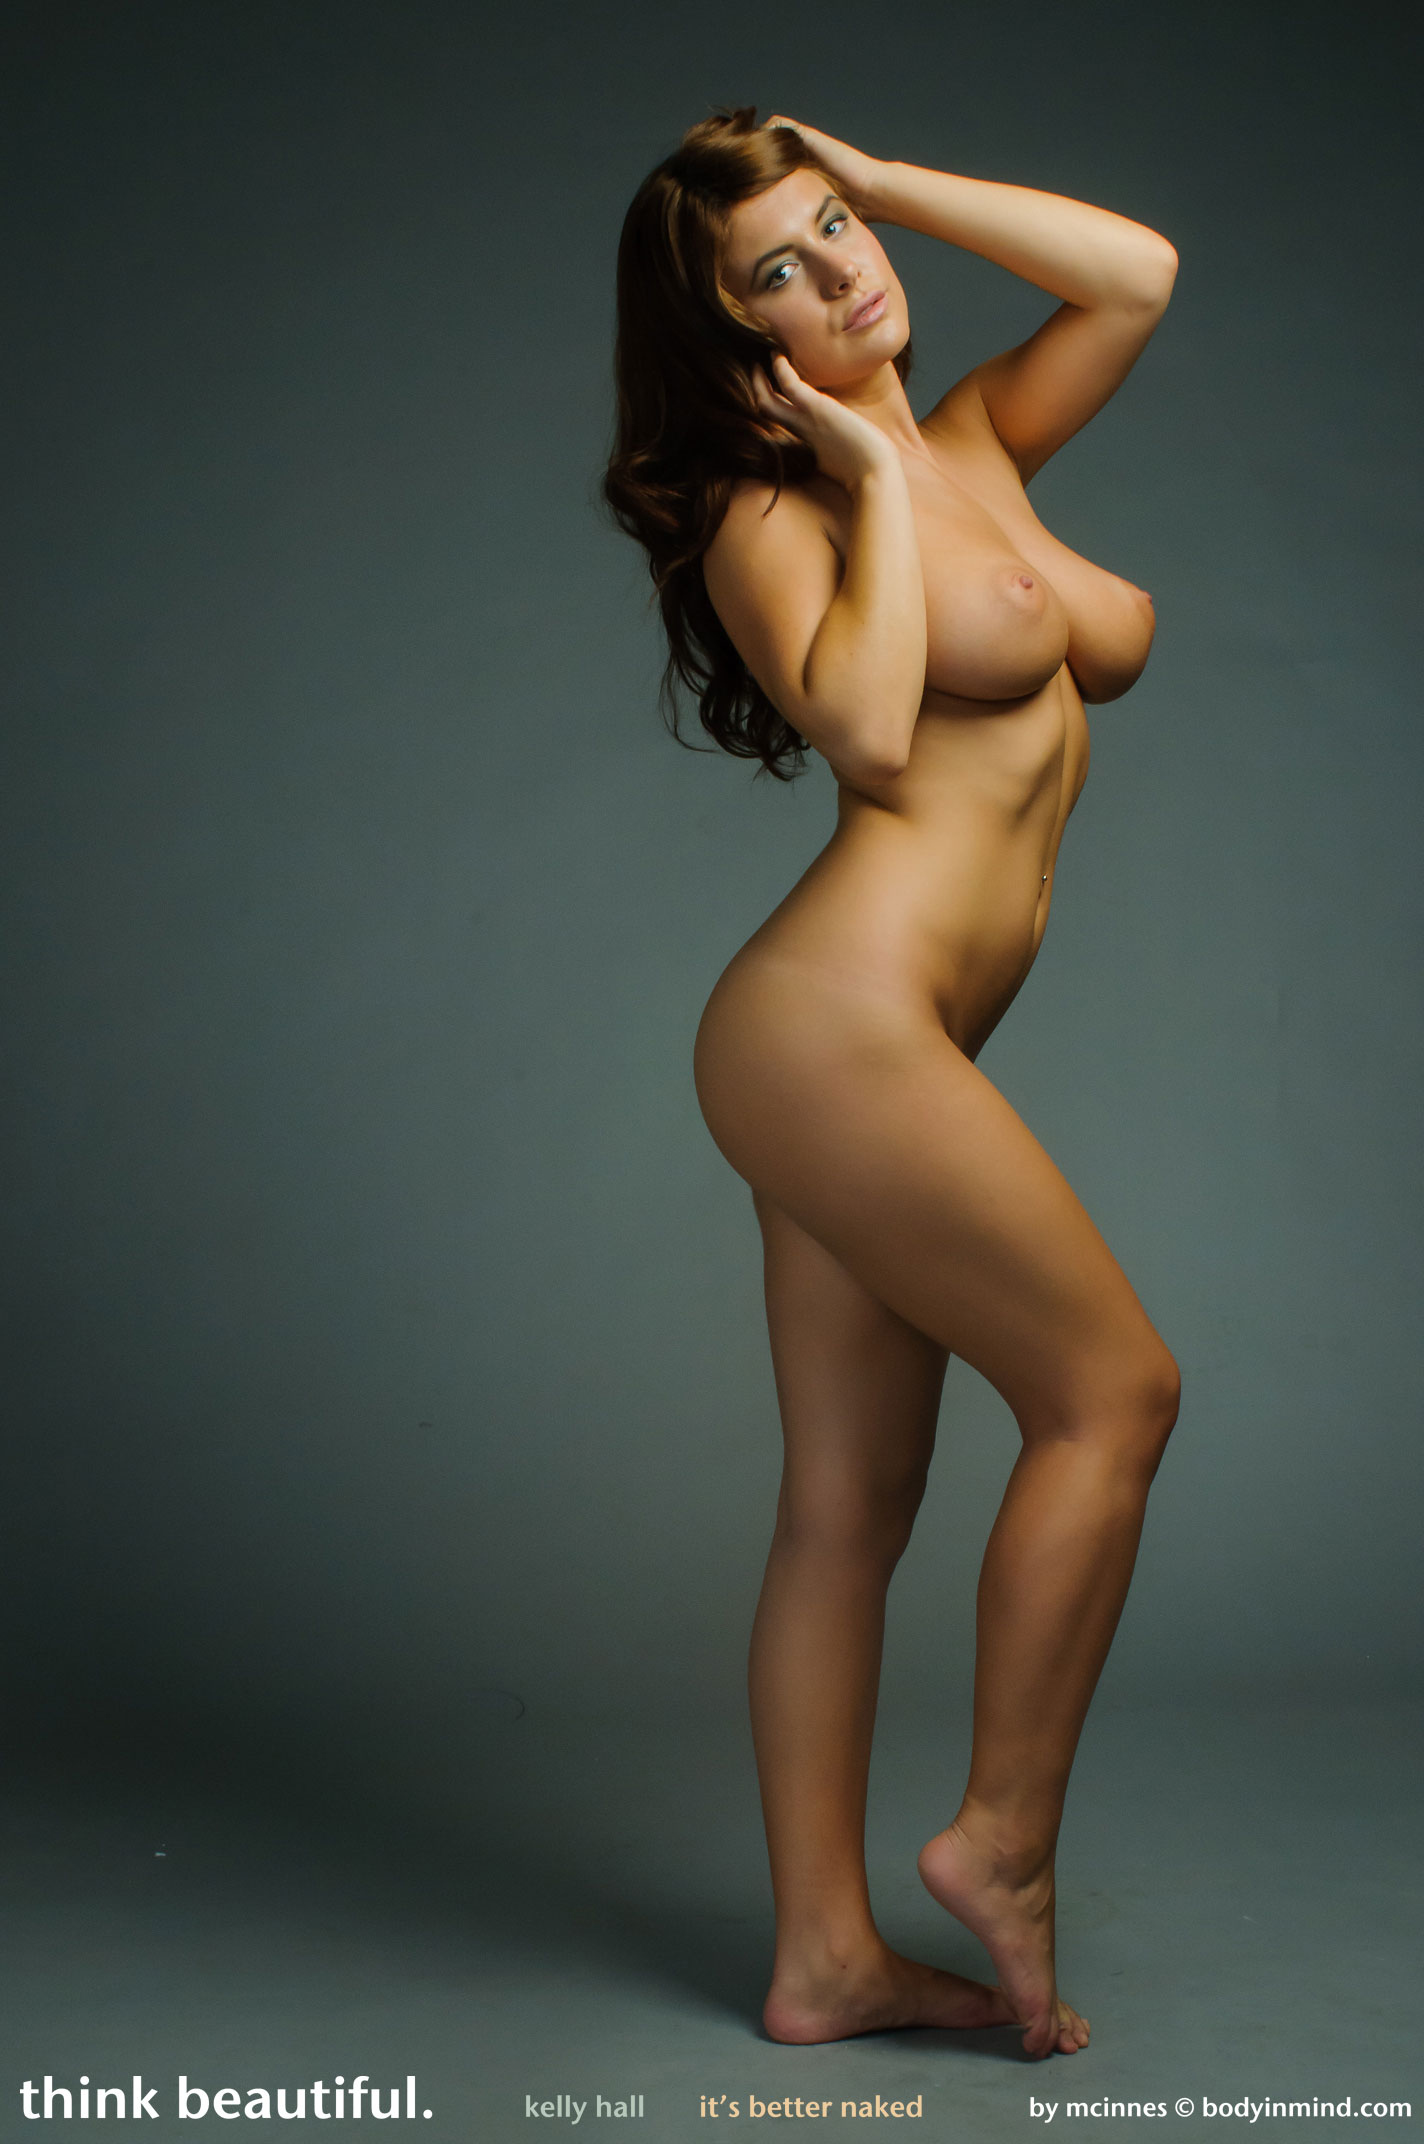 kelly from the game naked